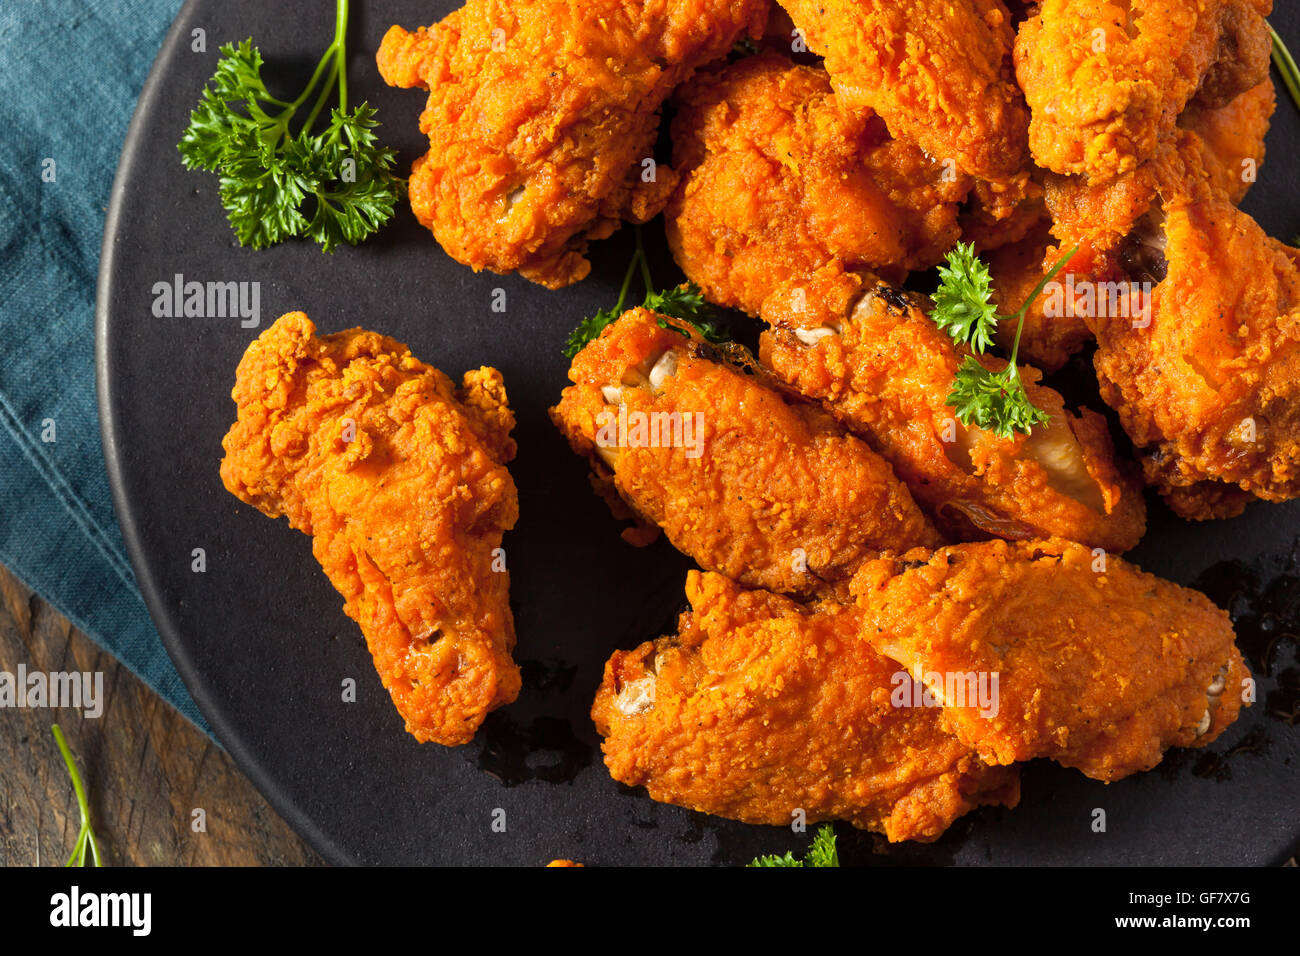 Spicy Deep Fried Breaded Chicken Wings with Ranch - Stock Image